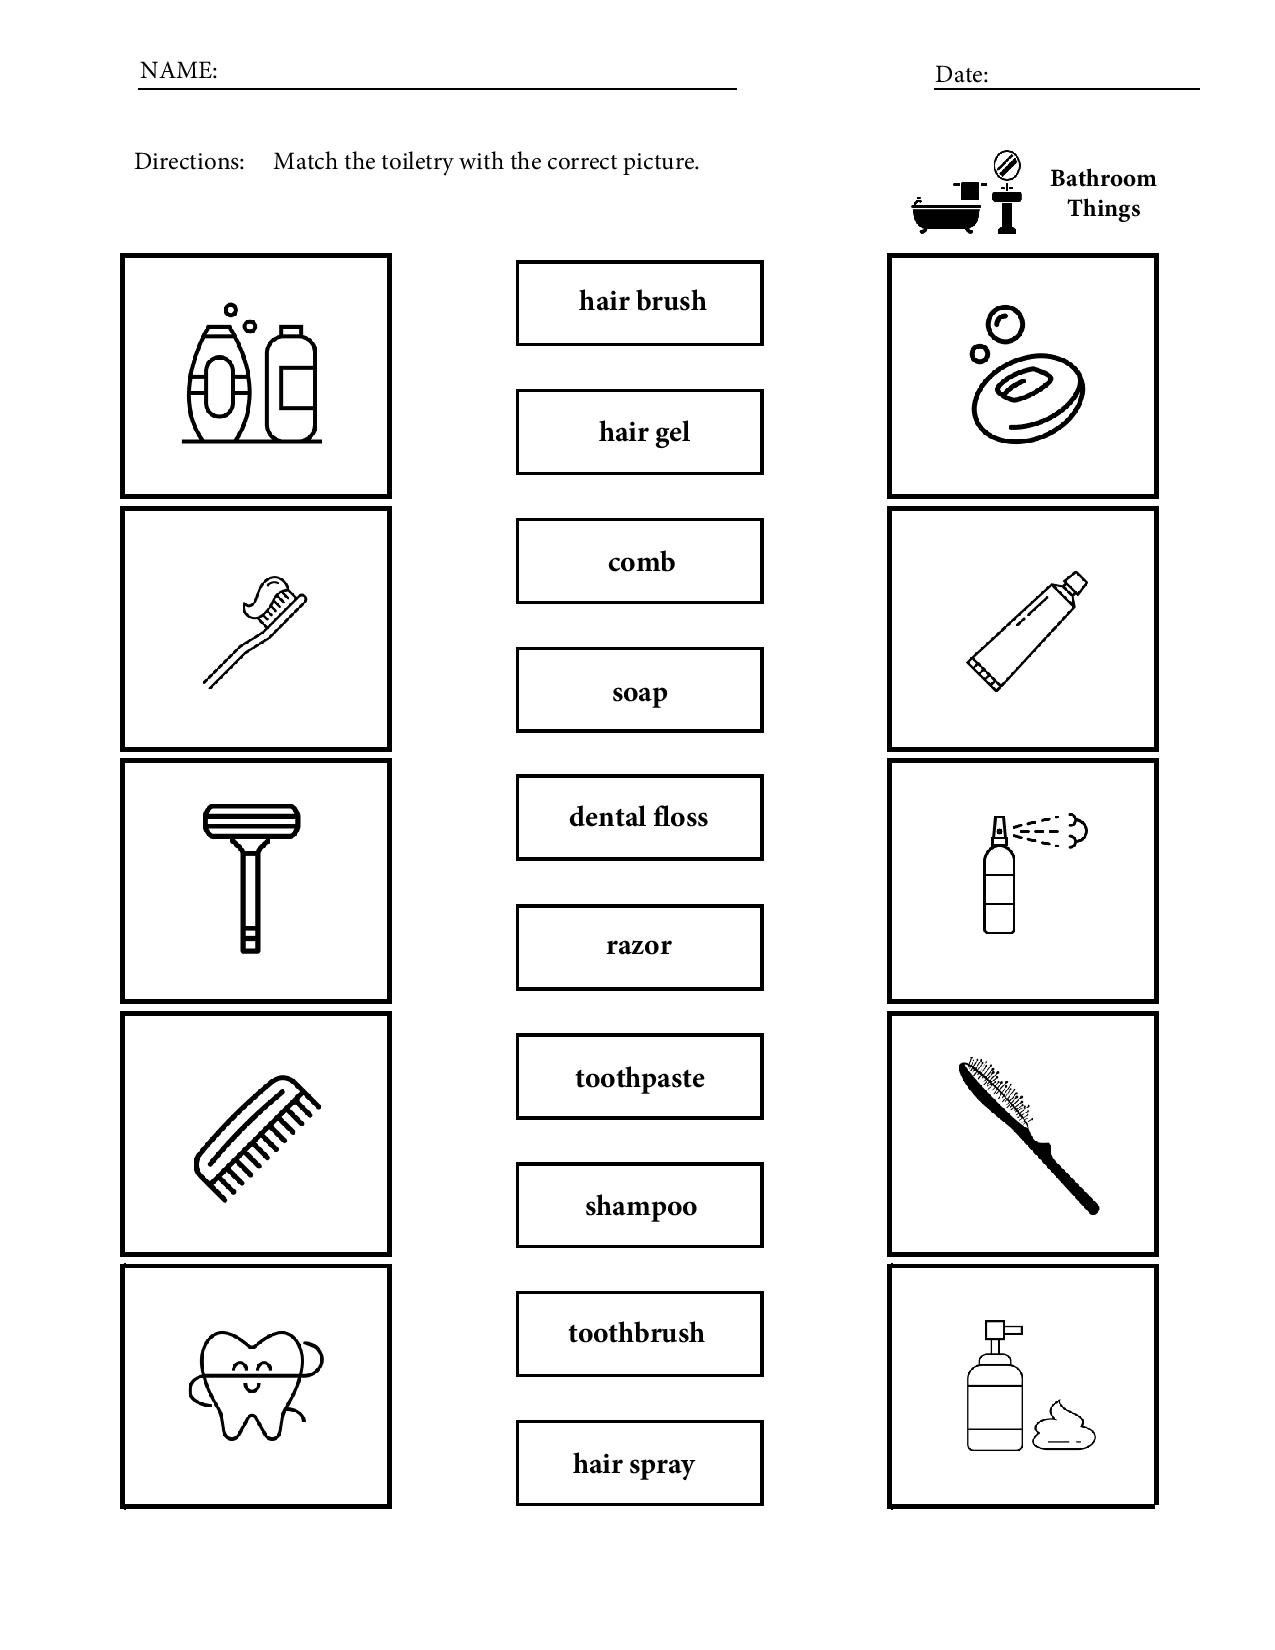 Bathroom Things Toiletries Vocabulary Worksheets For Children Match Draw Writ Kindergarten Worksheets Kindergarten Worksheets Printable Vocabulary Worksheets [ 1650 x 1275 Pixel ]